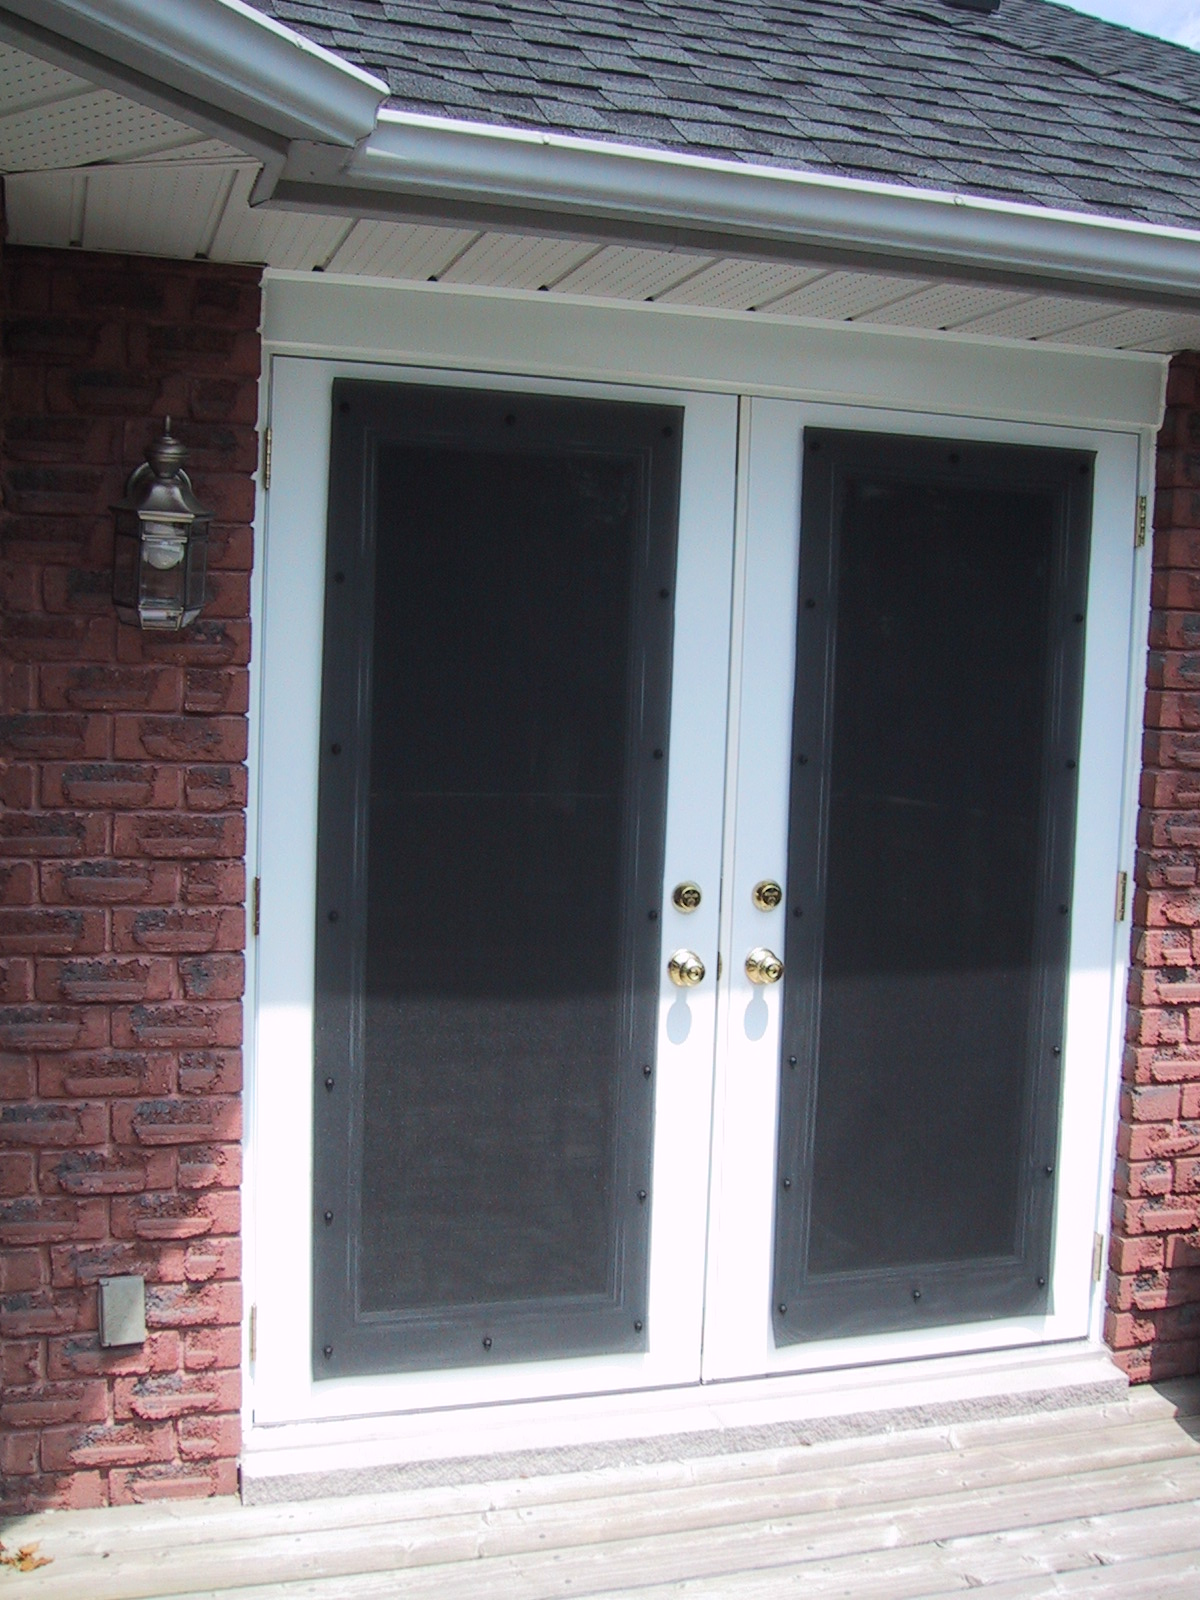 Retractable interior screen door is the additional protection from bad weather